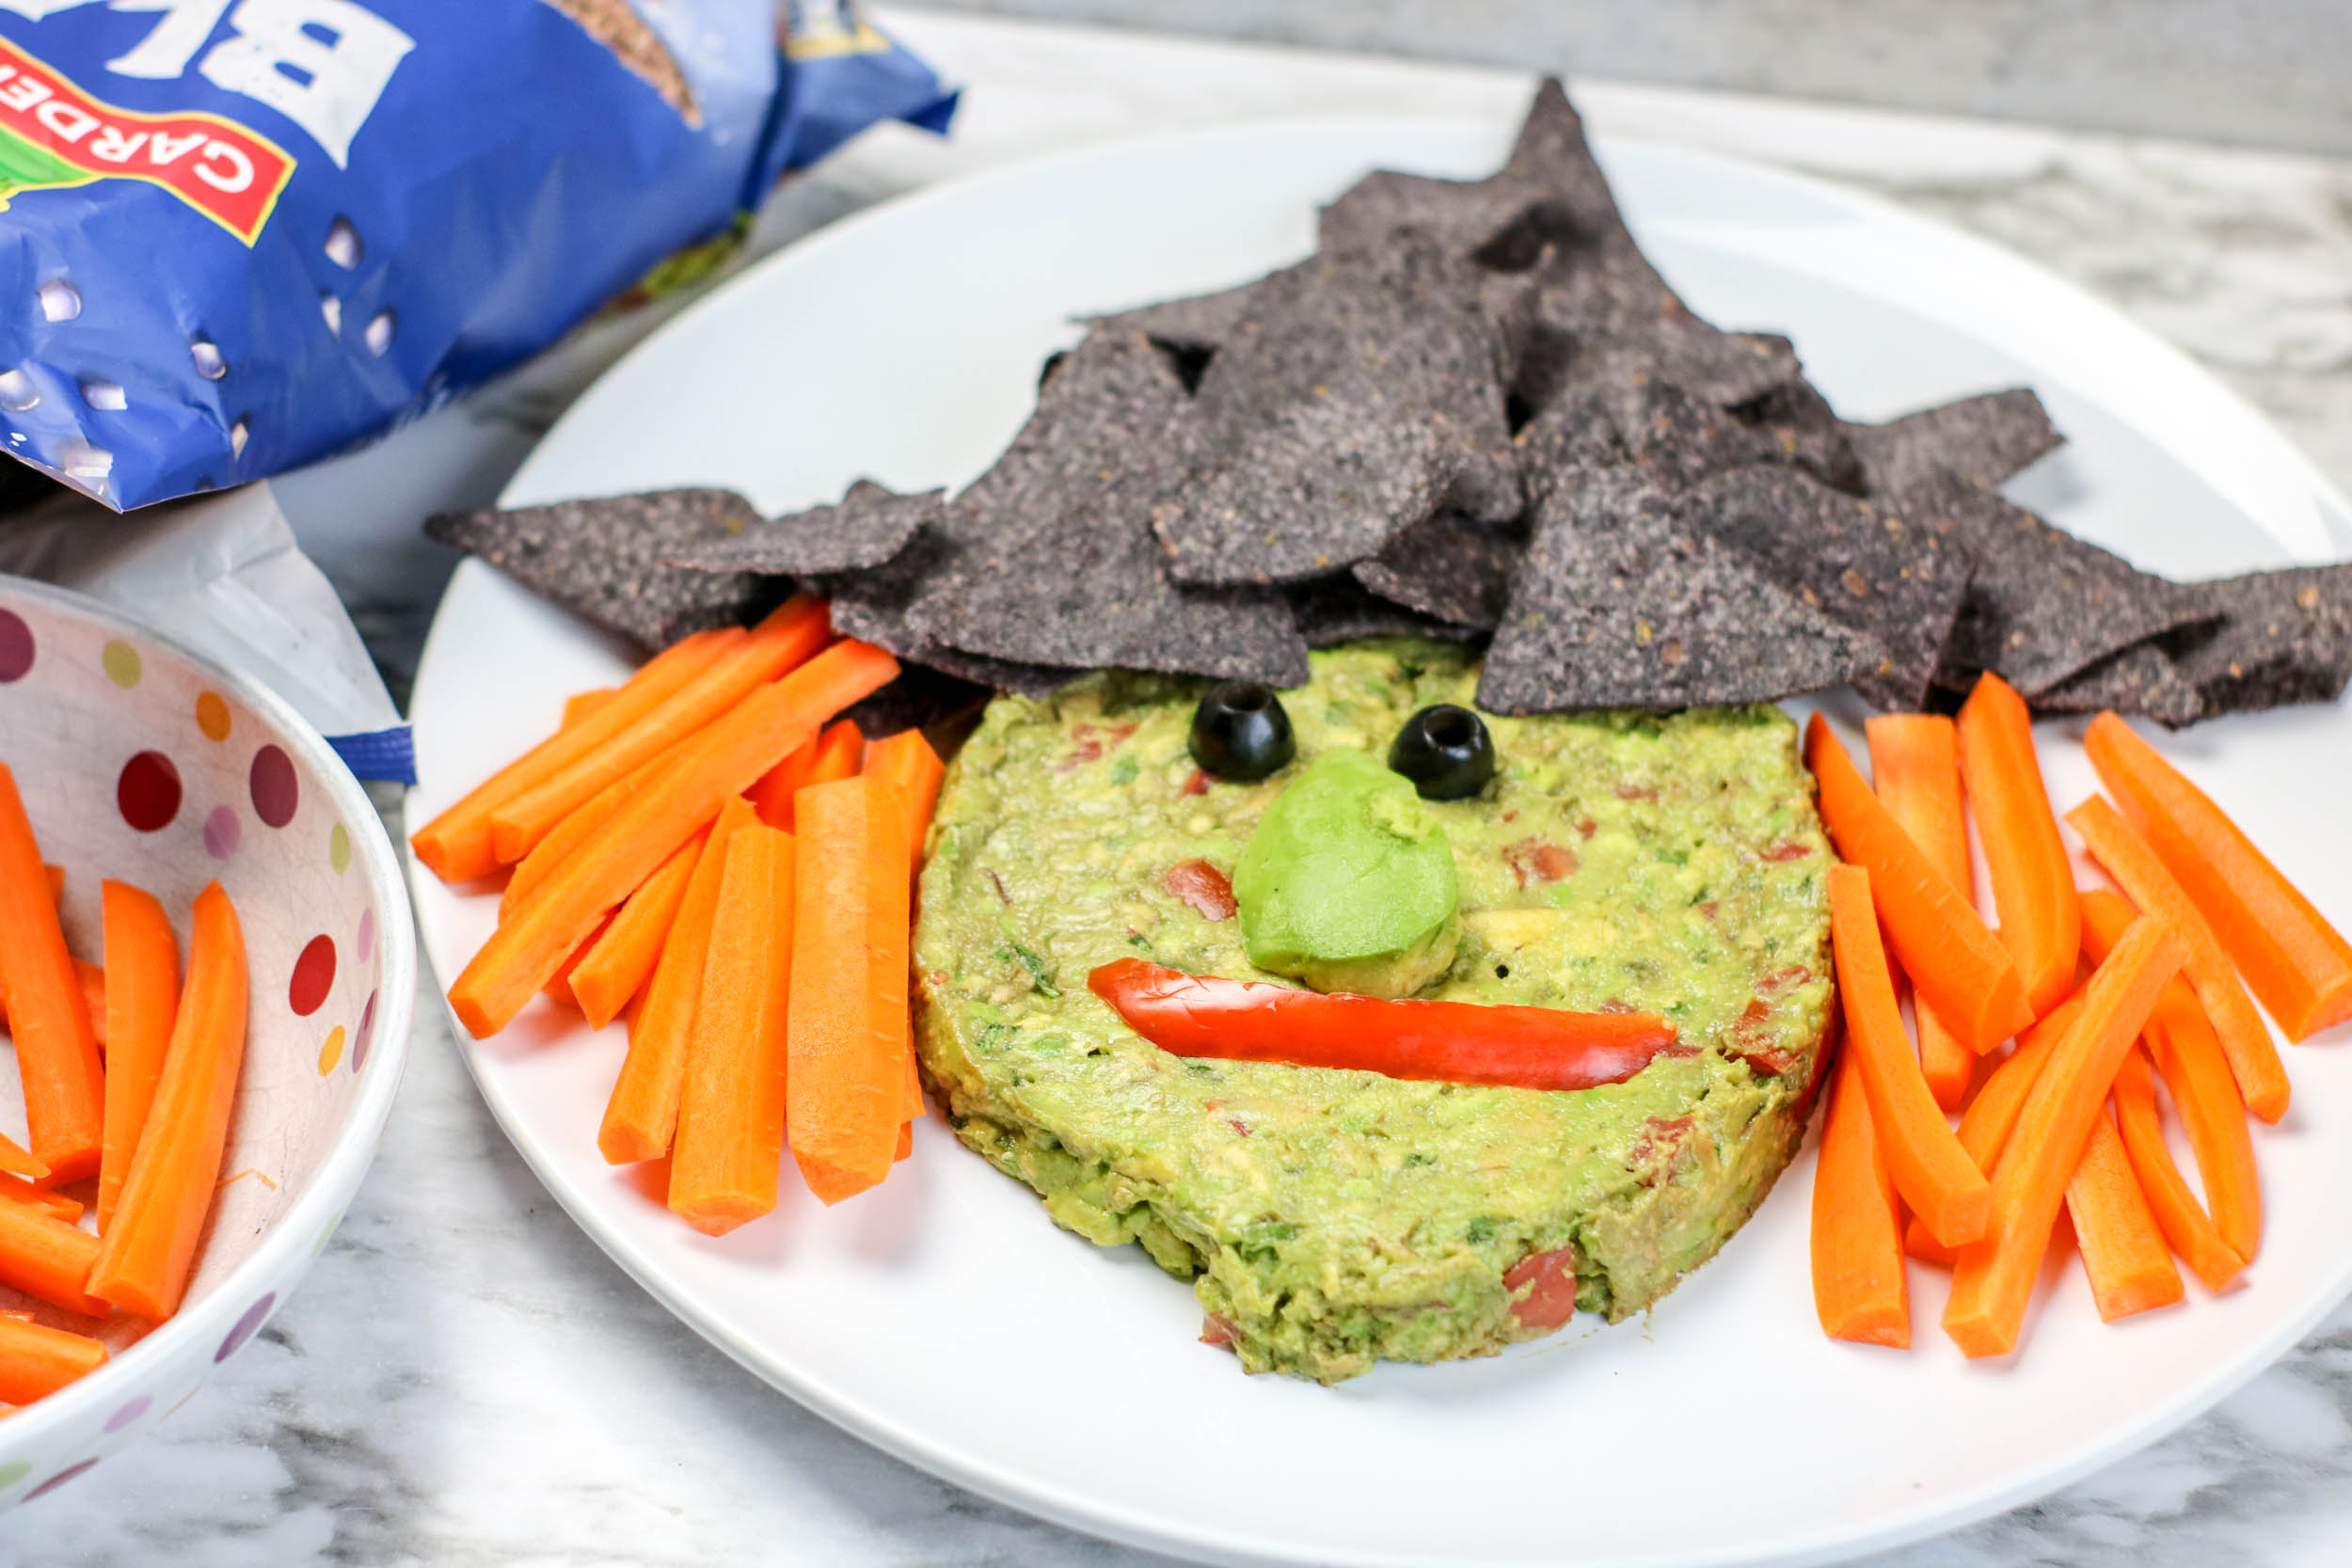 How to make a witch face appetizer for halloween from Guacamole